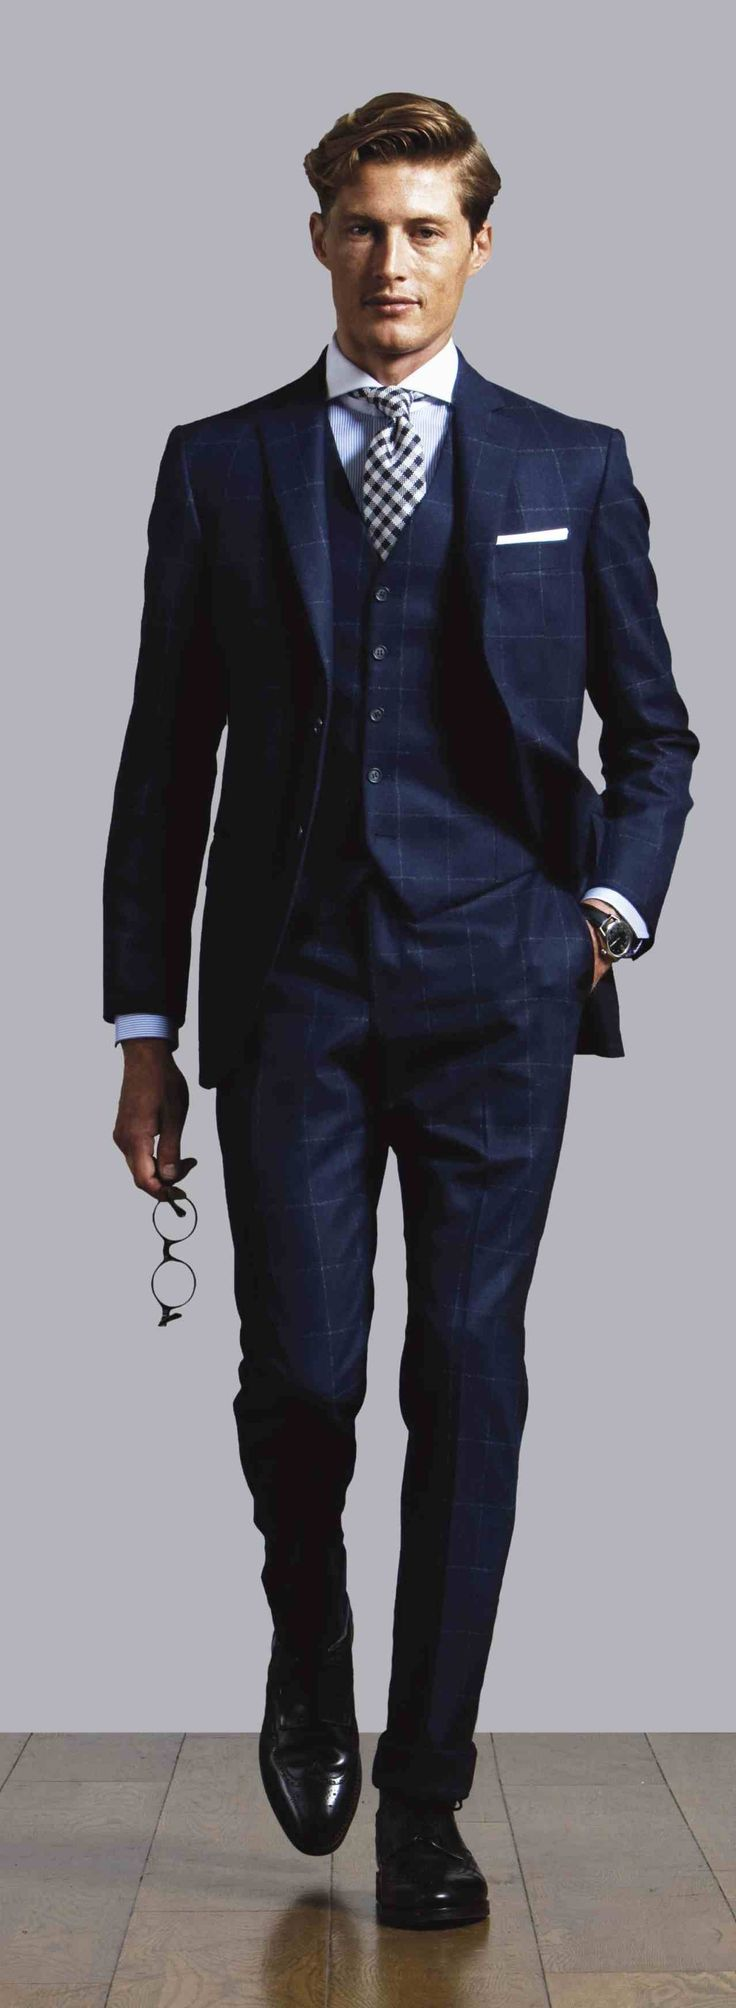 Three Piece Navy Suit Grooms Attire Pinterest Navy